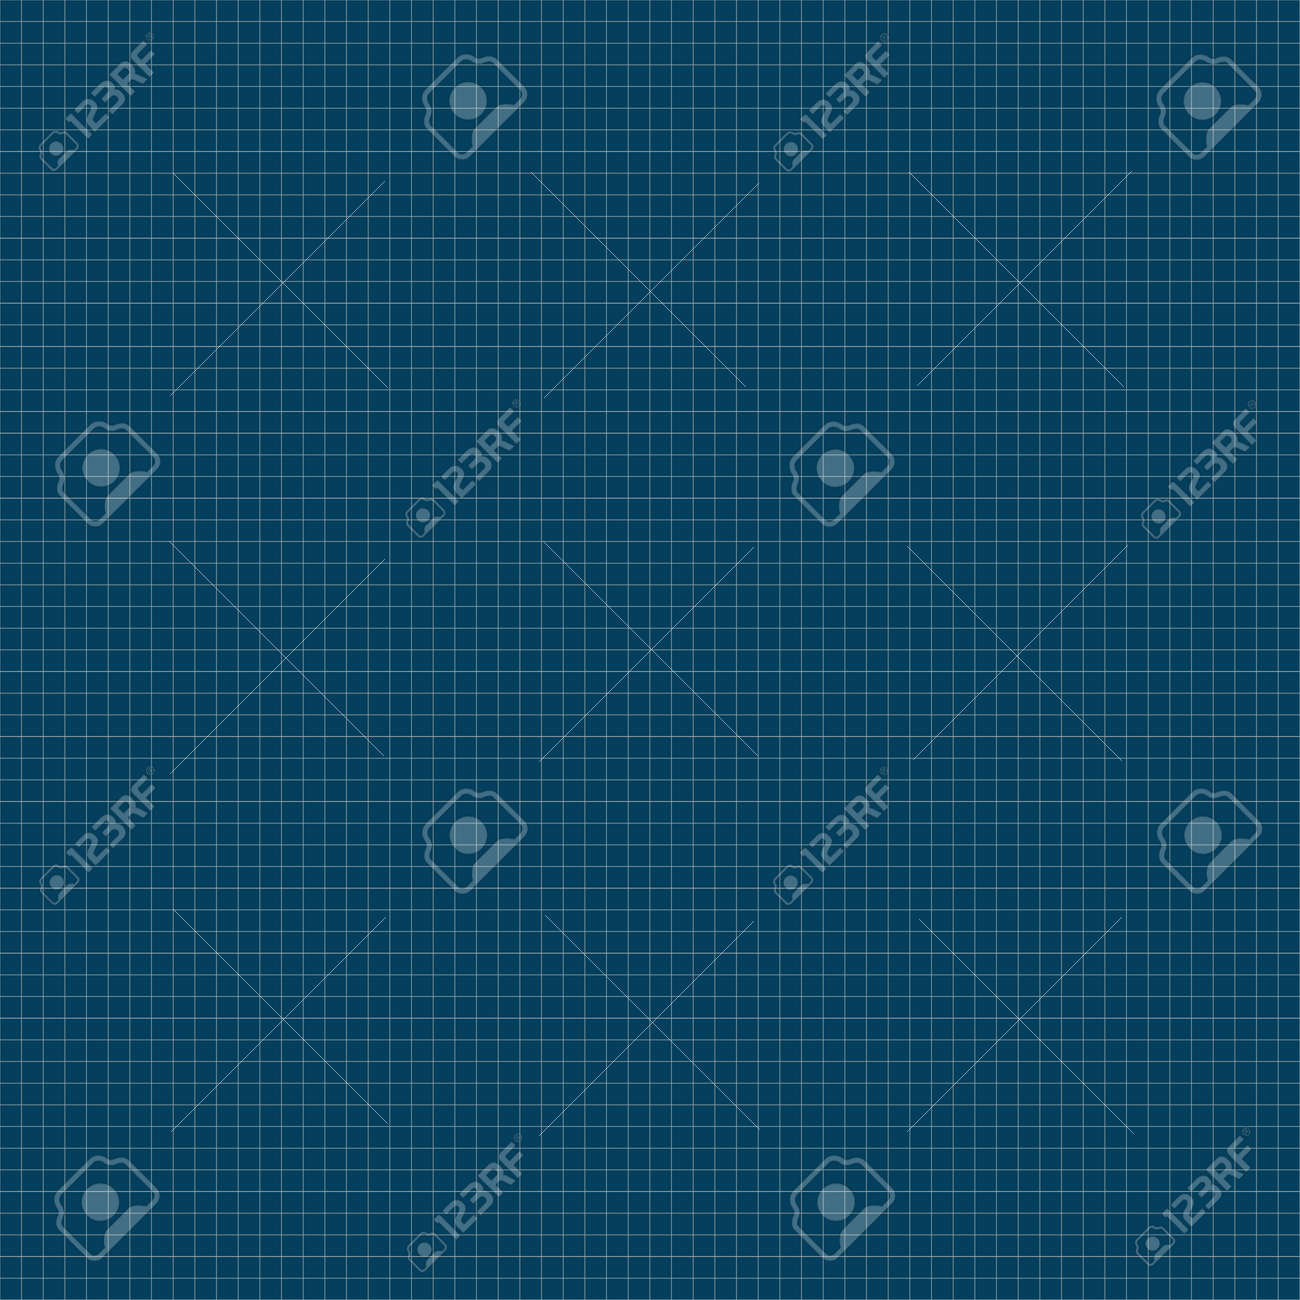 Blueprint grid background graphing paper for engineering in blueprint grid background graphing paper for engineering in vector illustration stock vector 42420568 malvernweather Images